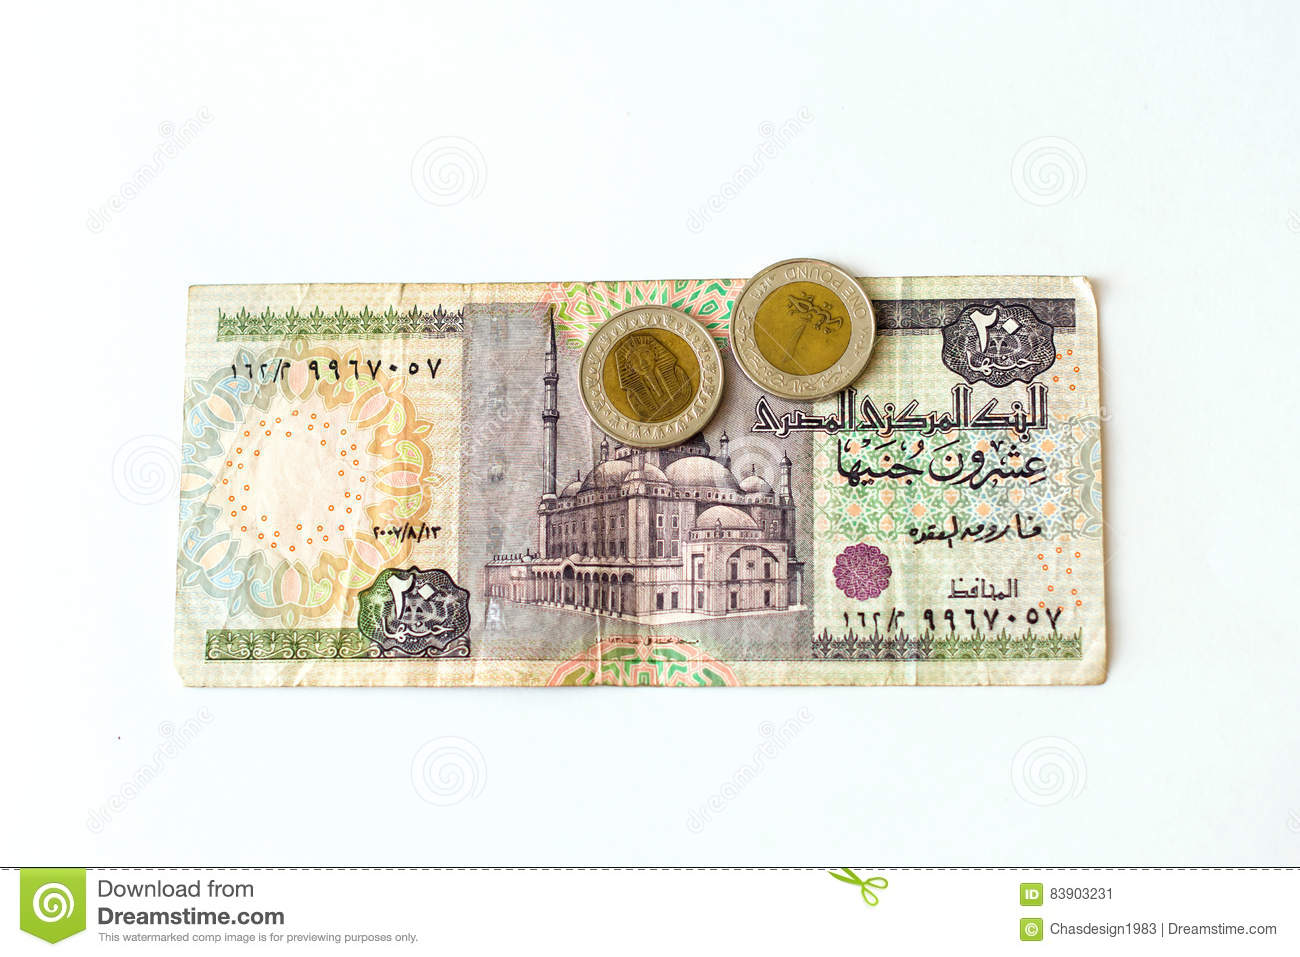 20 Egyptian Pounds Banknote Egp Stock Image Image Of Expenditure